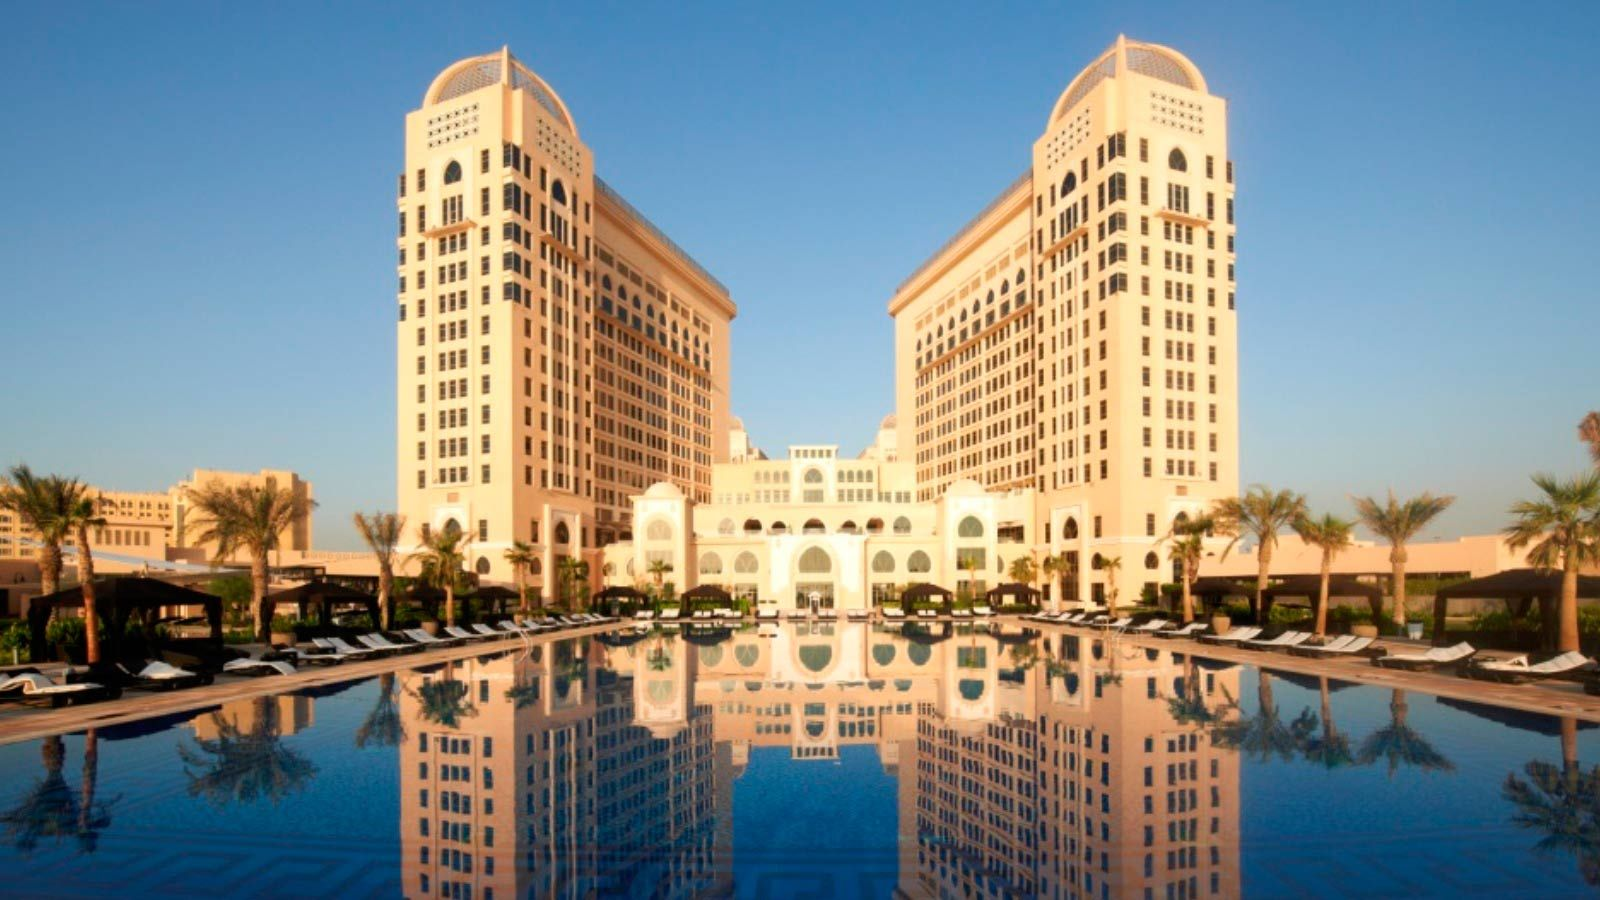 The St Regis Doha Offers Comfort And Convenience Whether You Re On Business Or Holiday In Offering A Variety Of Facilities Services Hotel